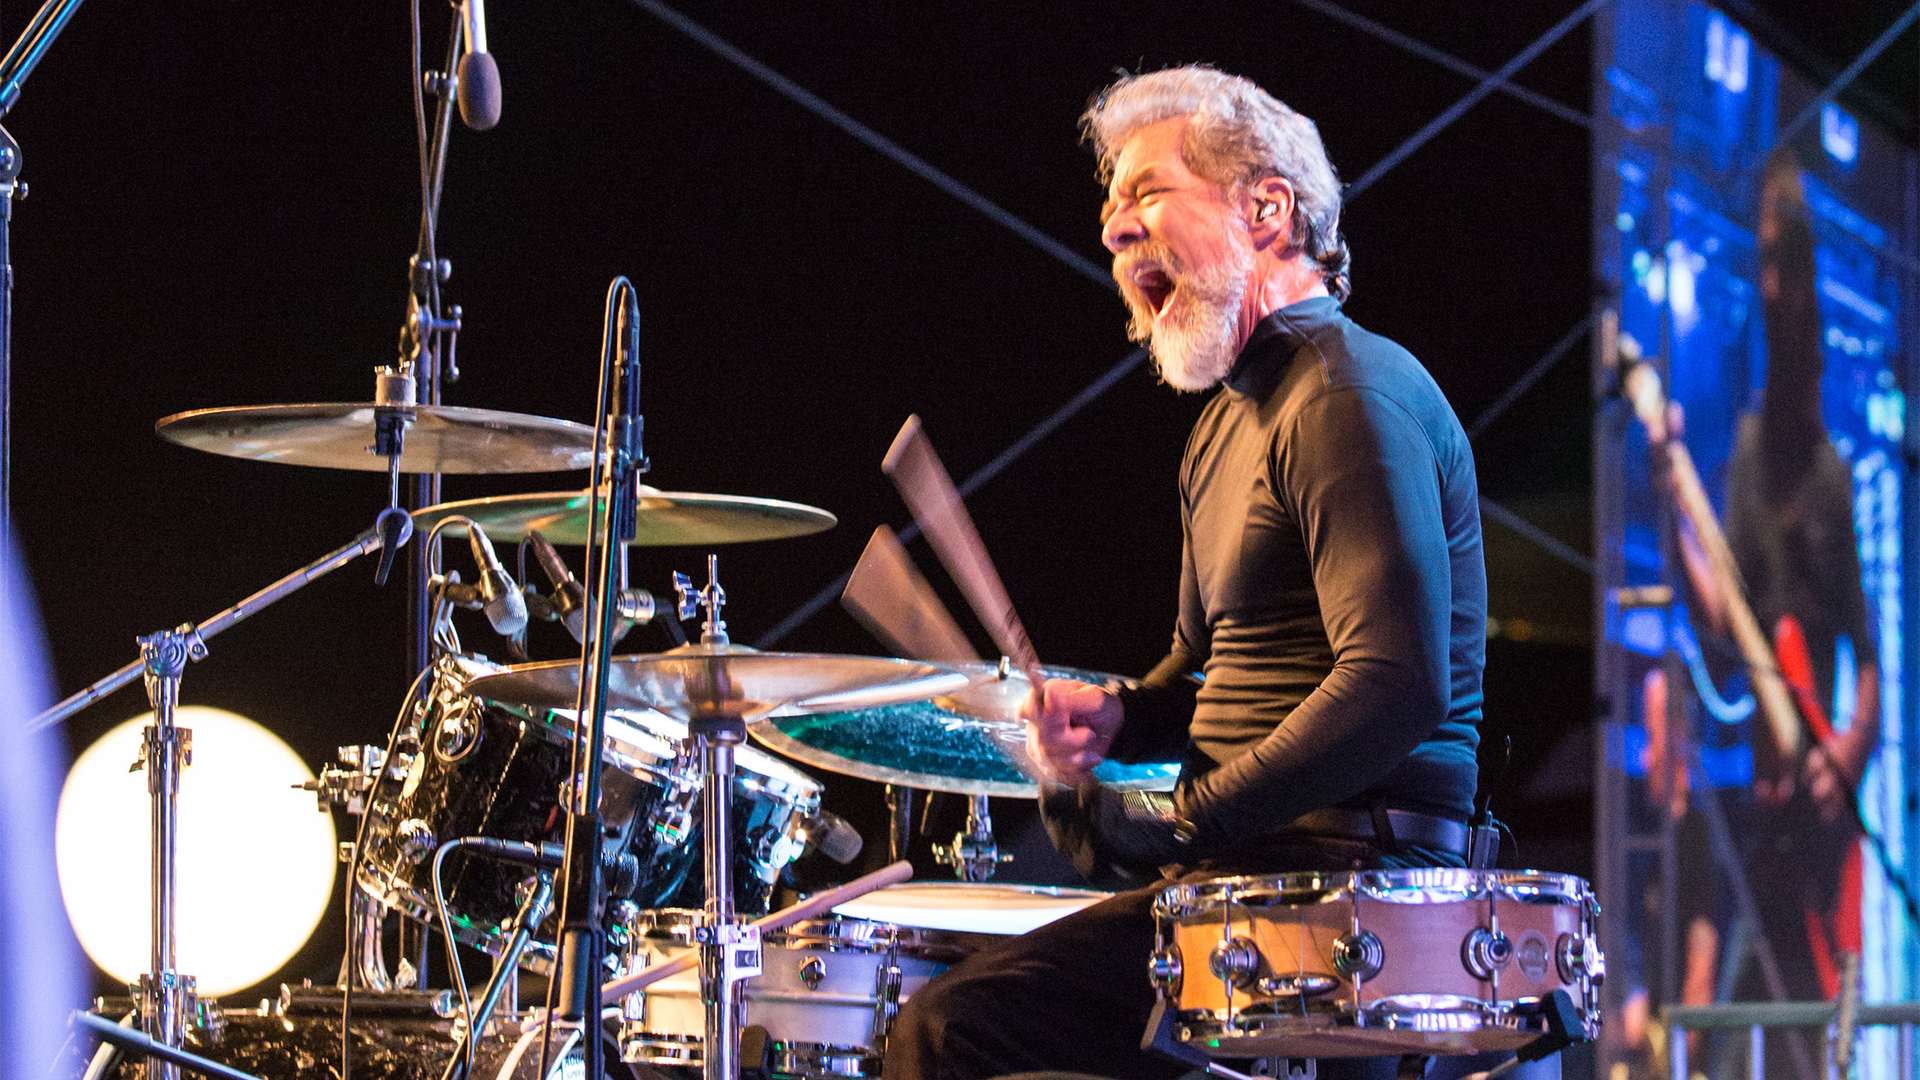 Doug Clifford on drums hero